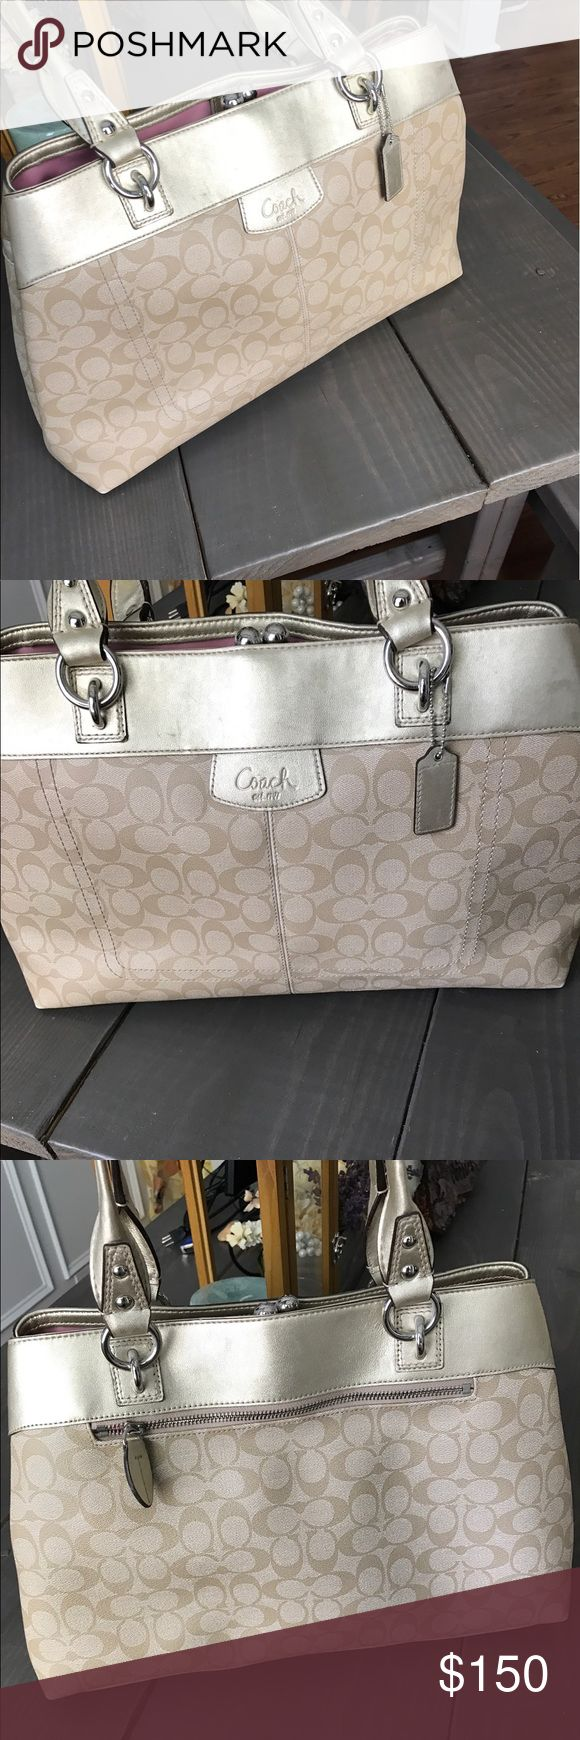 Coach tote bag This is enough and take old coach tote bag Coach Accessories